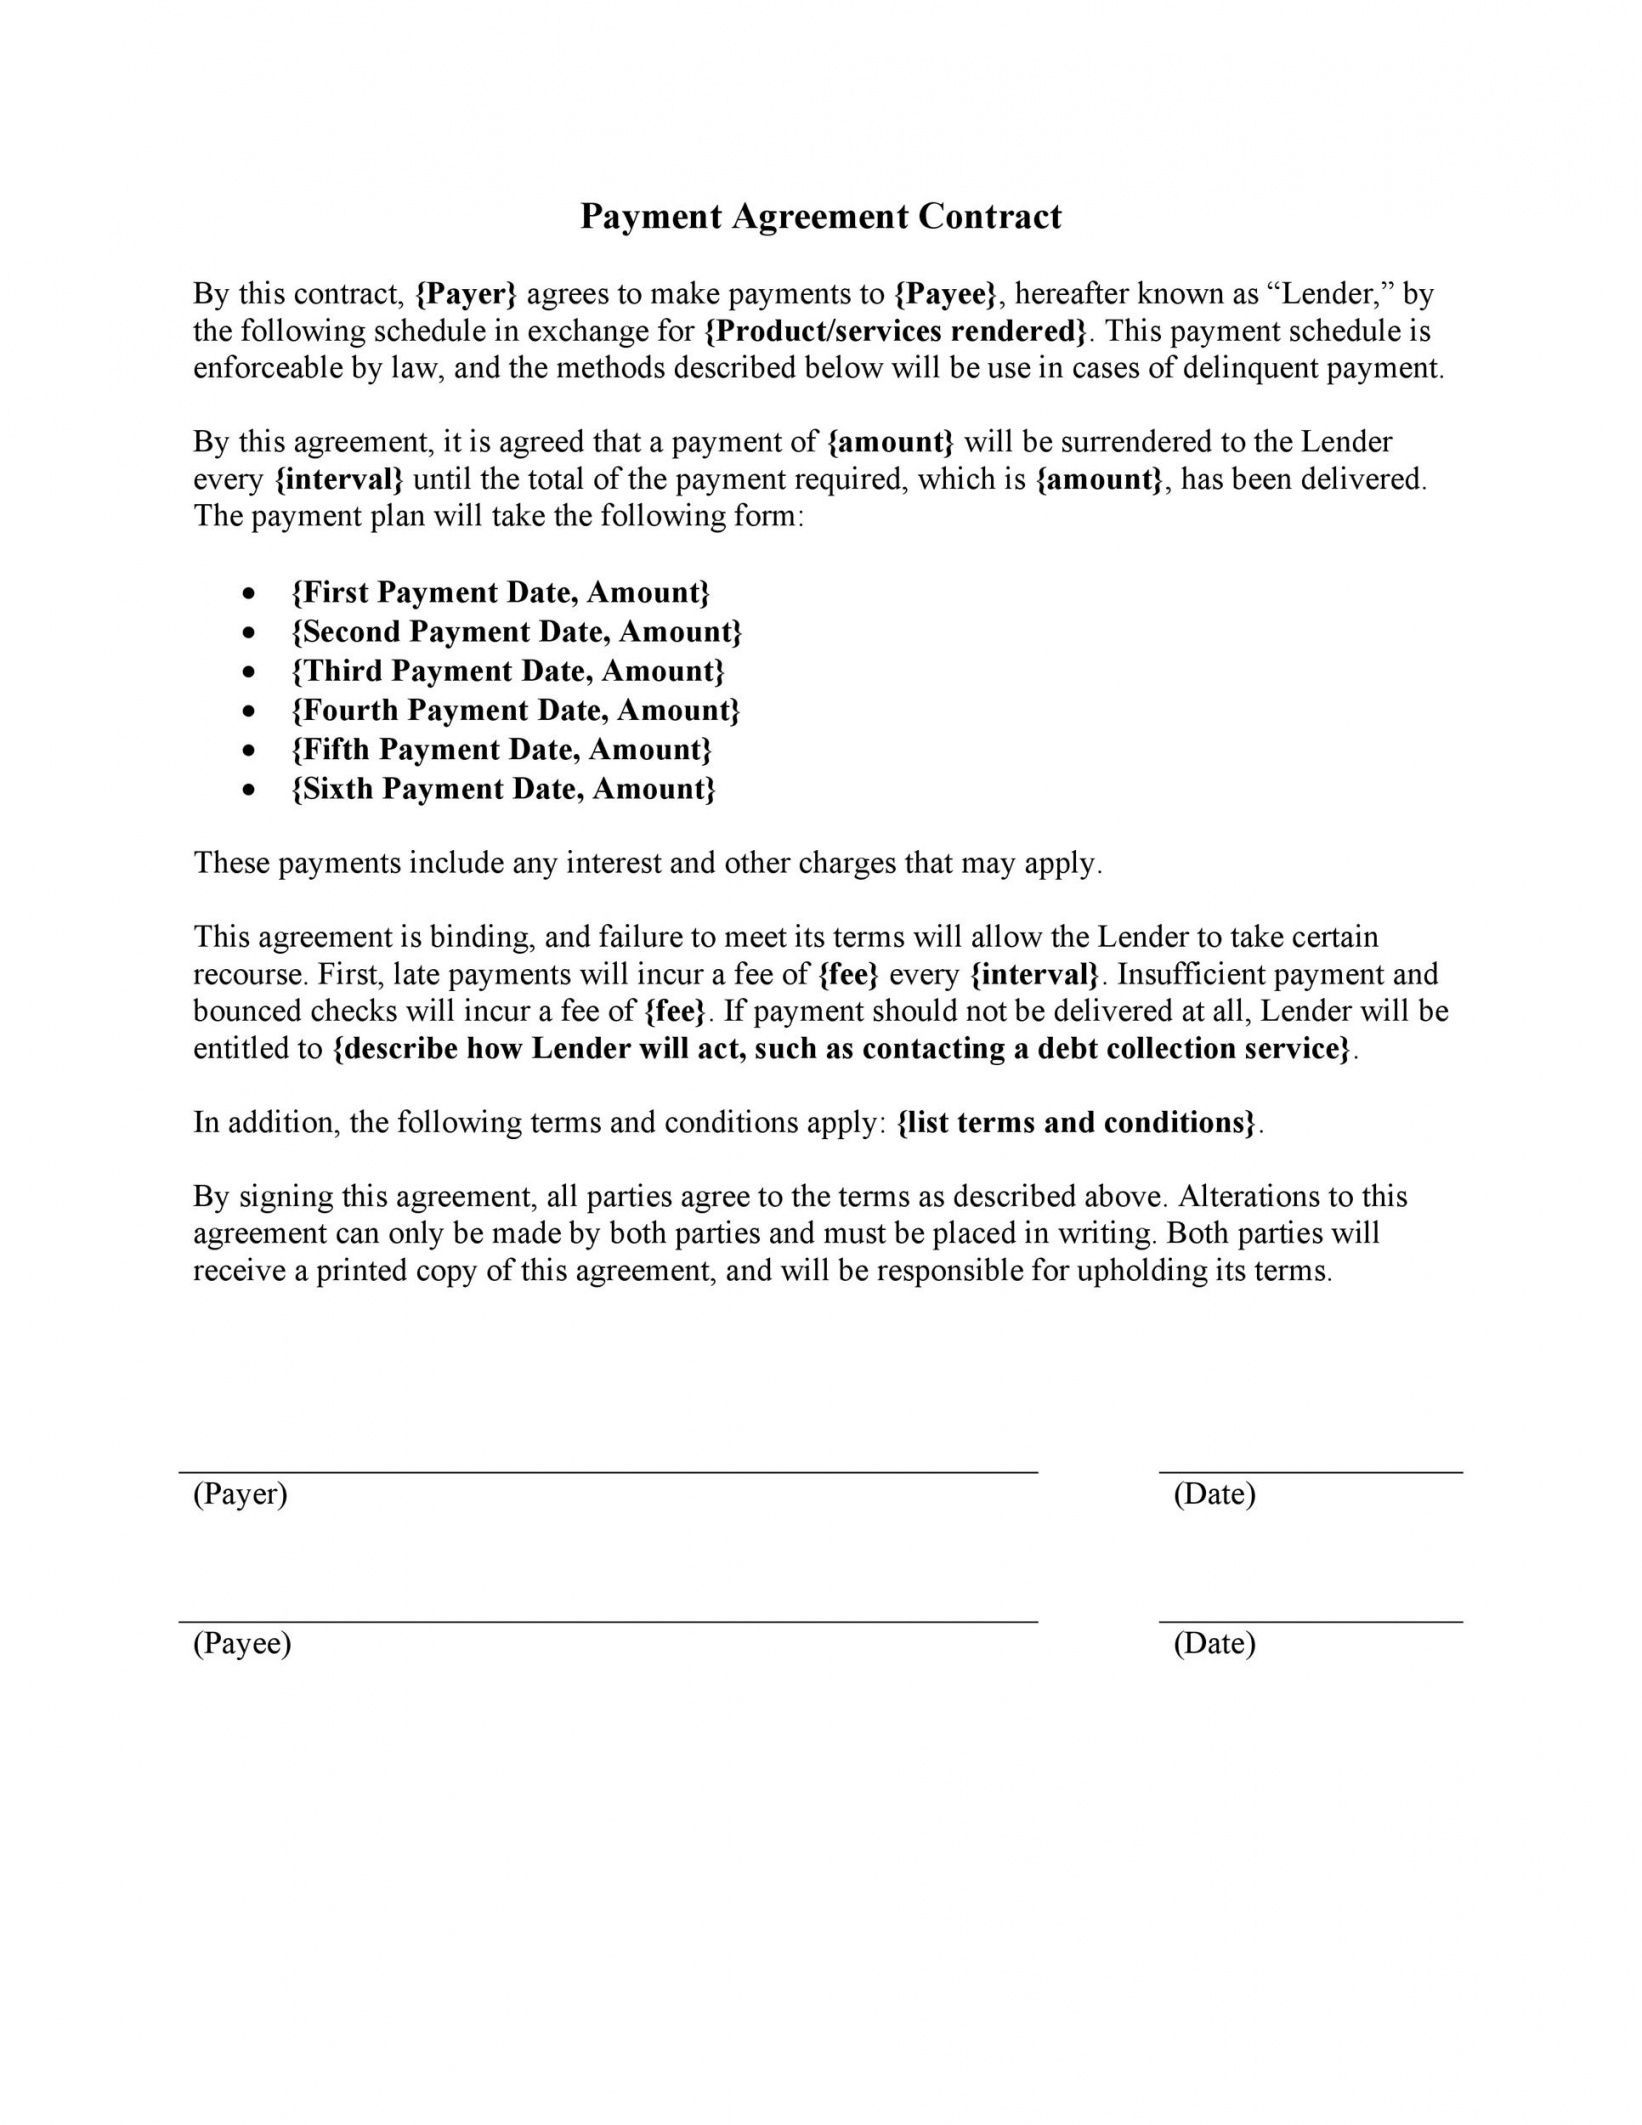 Browse Our Sample Of Third Party Funding Agreement Template Payment Agreement Contract Template Contract Agreement